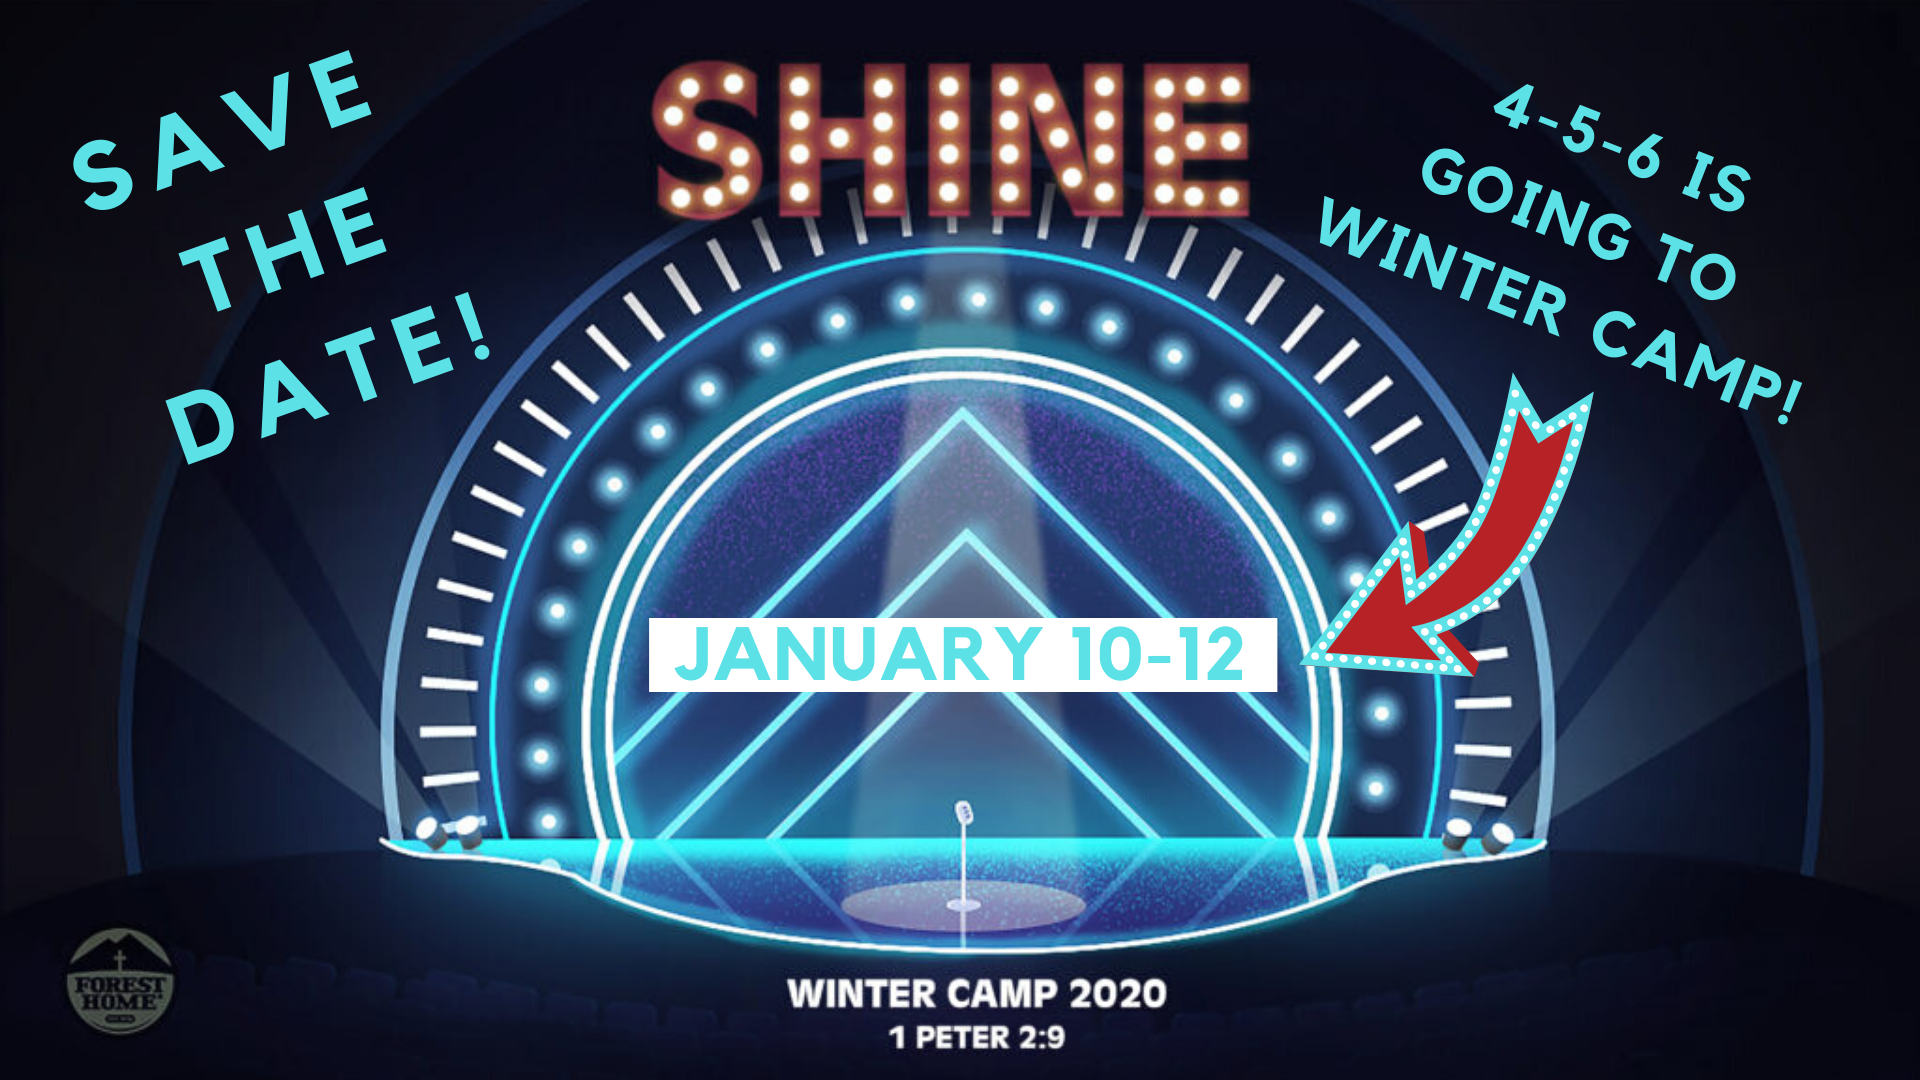 4-5-6 Winter Camp